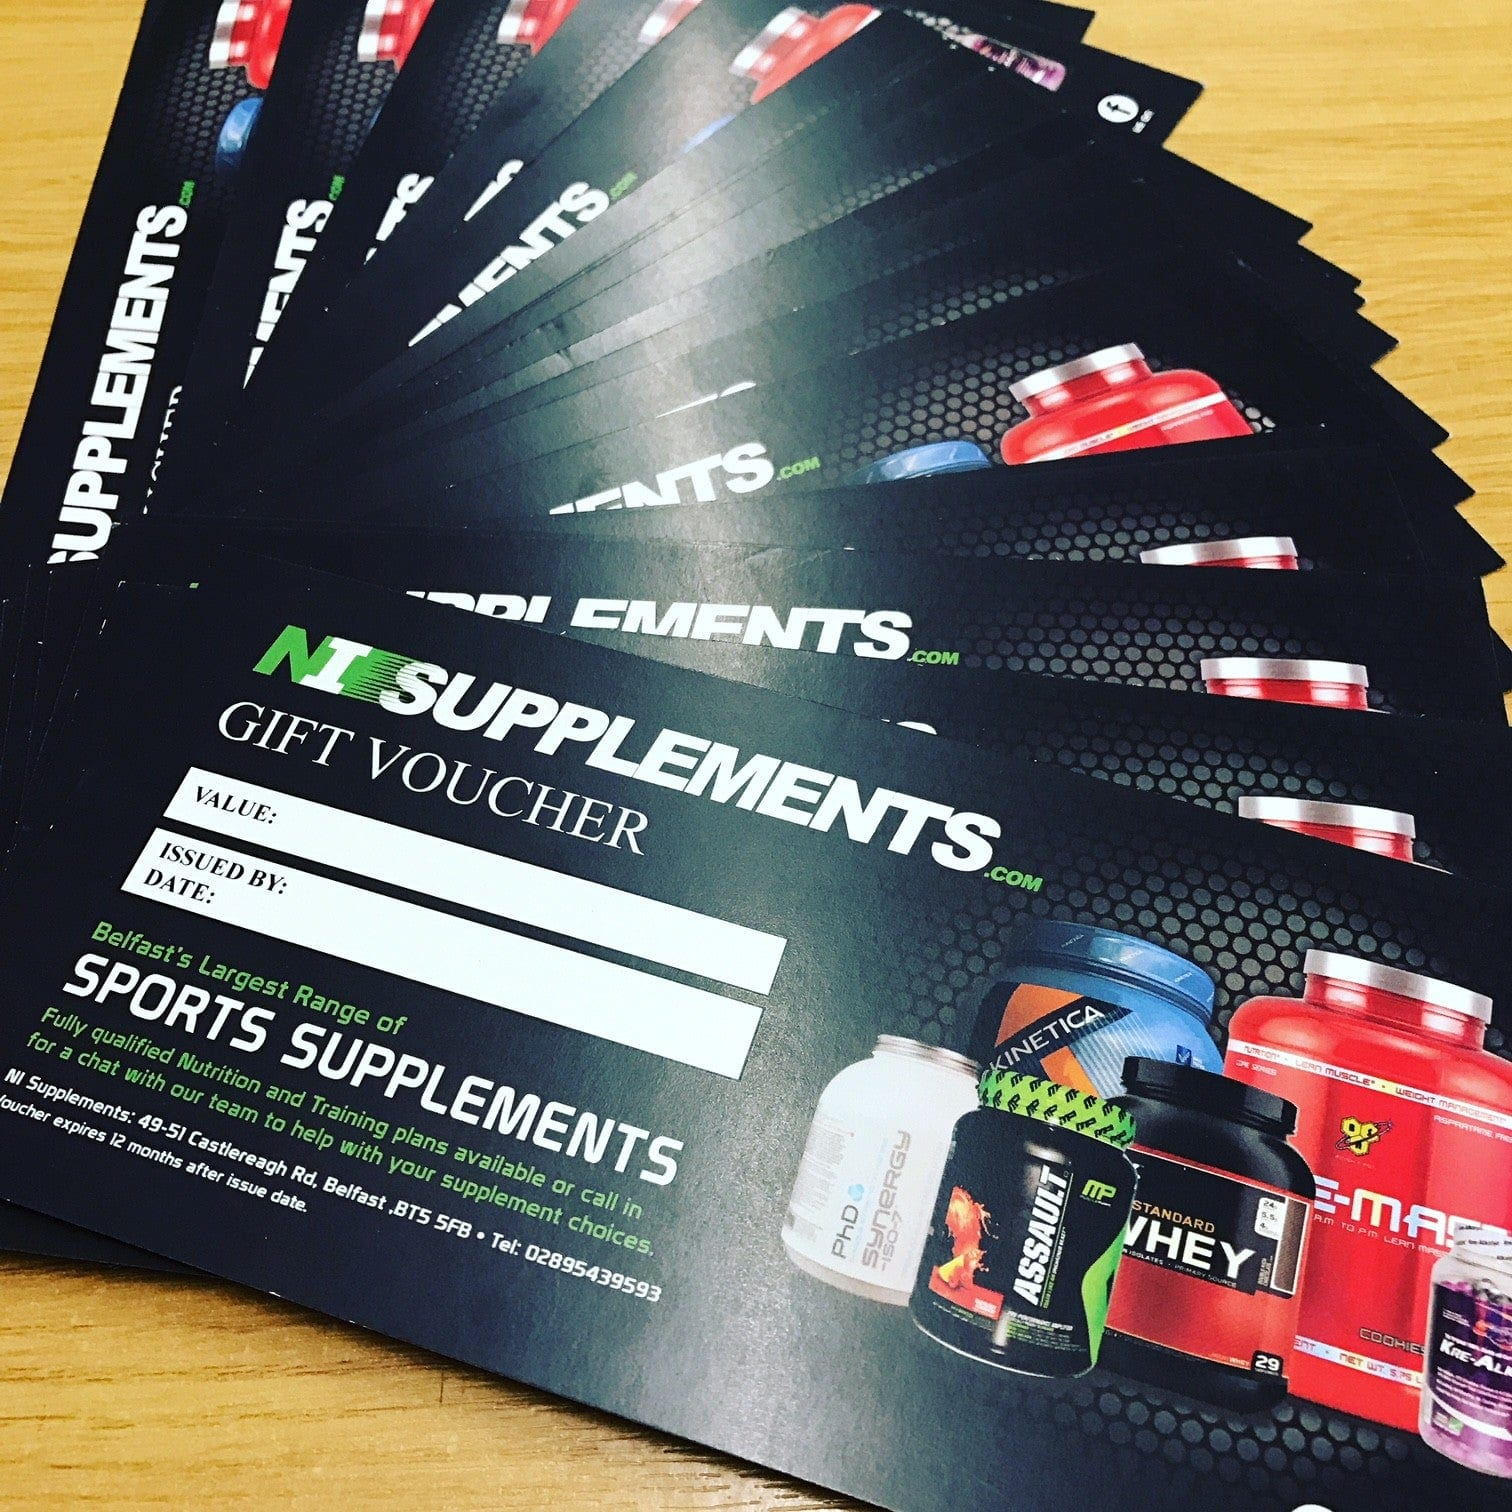 NI Supplements Gift Voucher £30